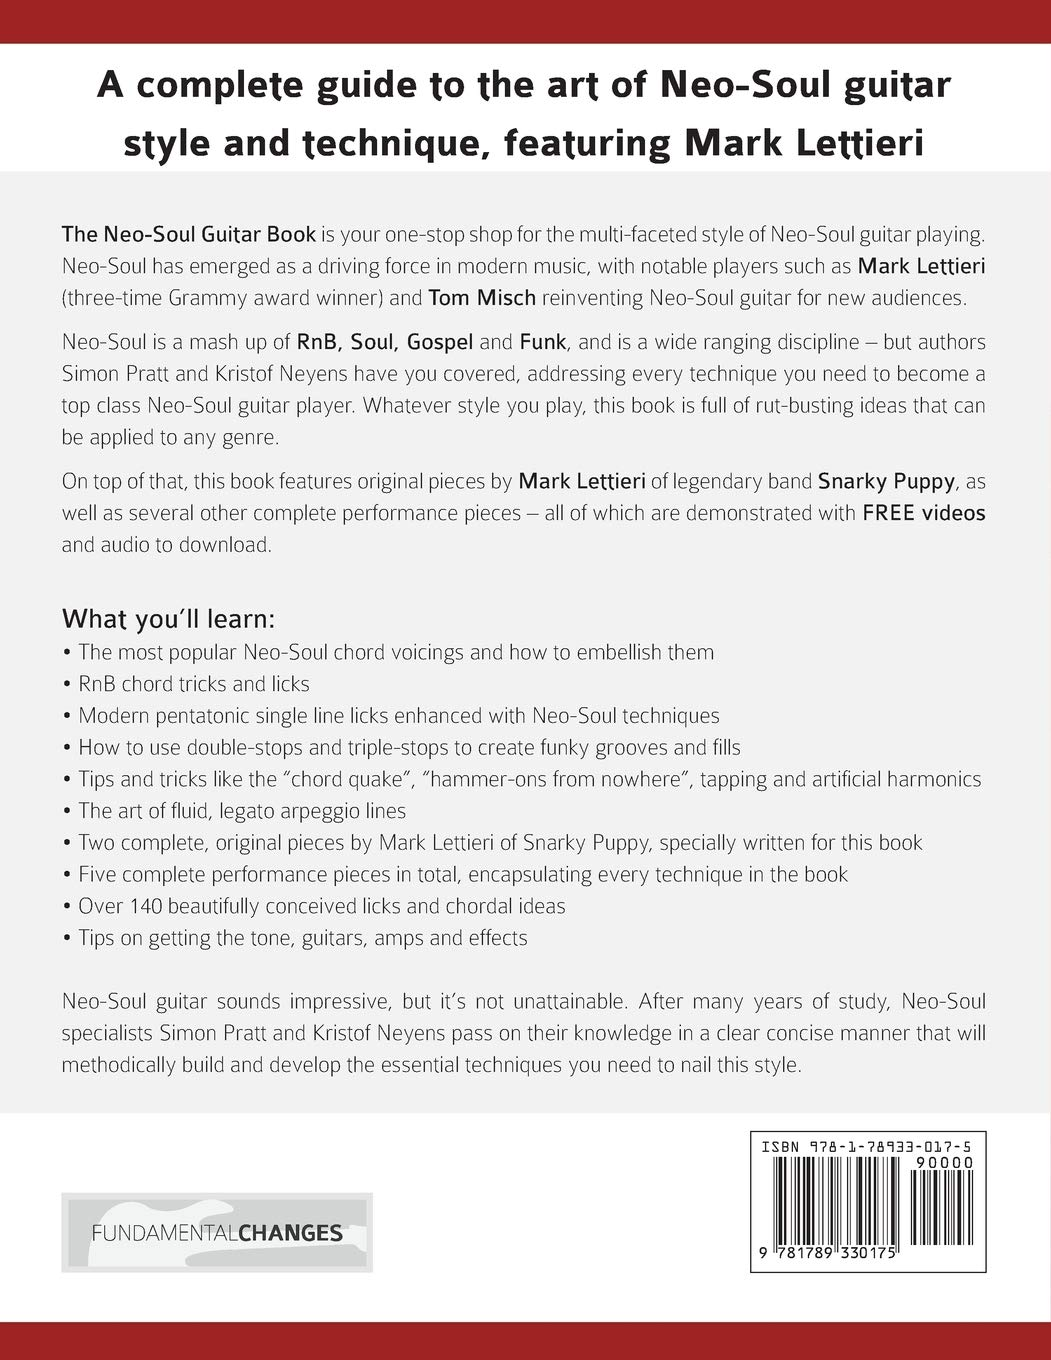 The Neo-Soul Guitar Book: A Complete Guide to Neo-Soul Guitar ...